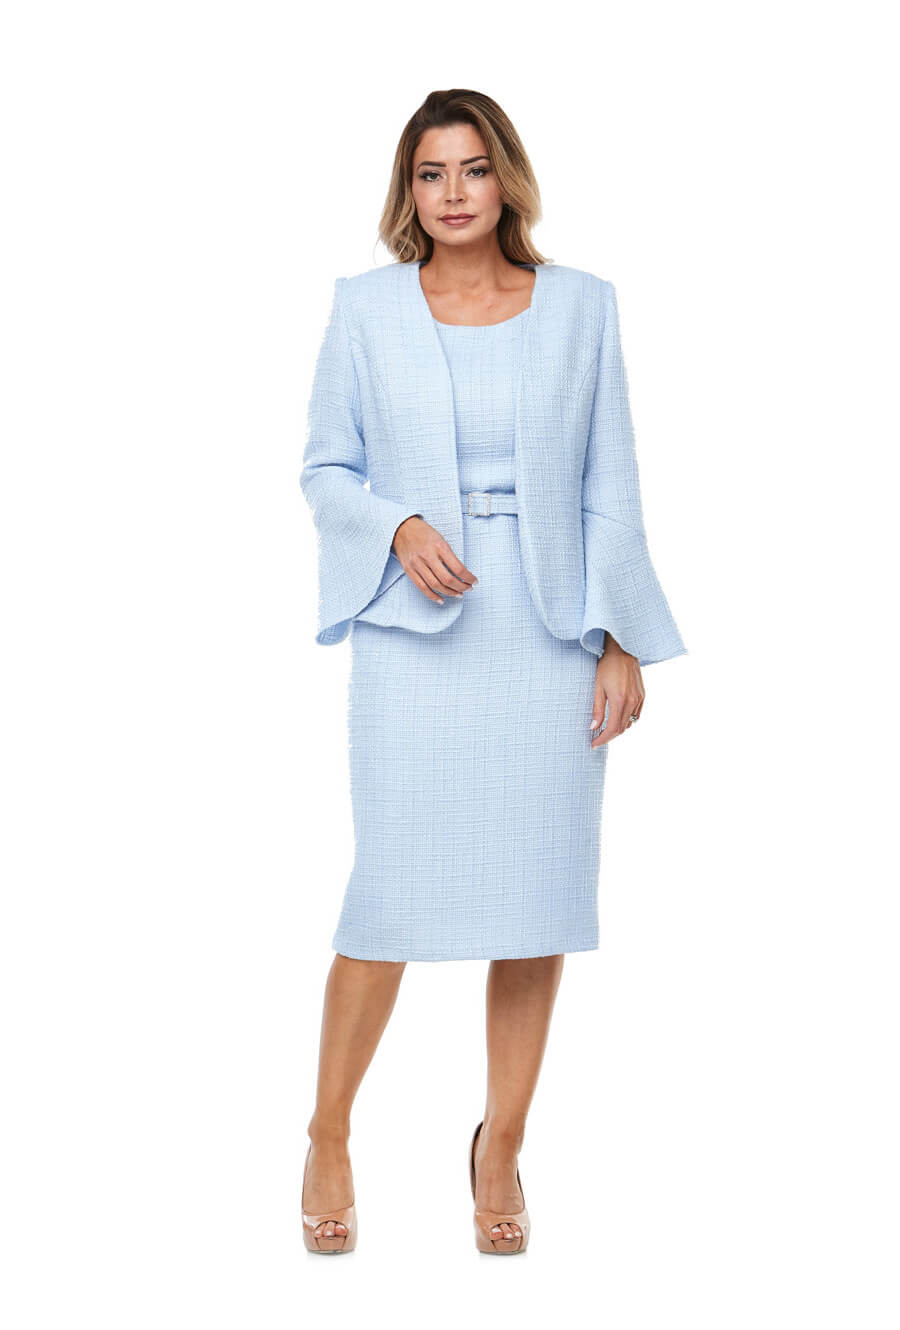 Mid length shift dress with cap sleeve, matching belt & tailored bell sleeve jacket